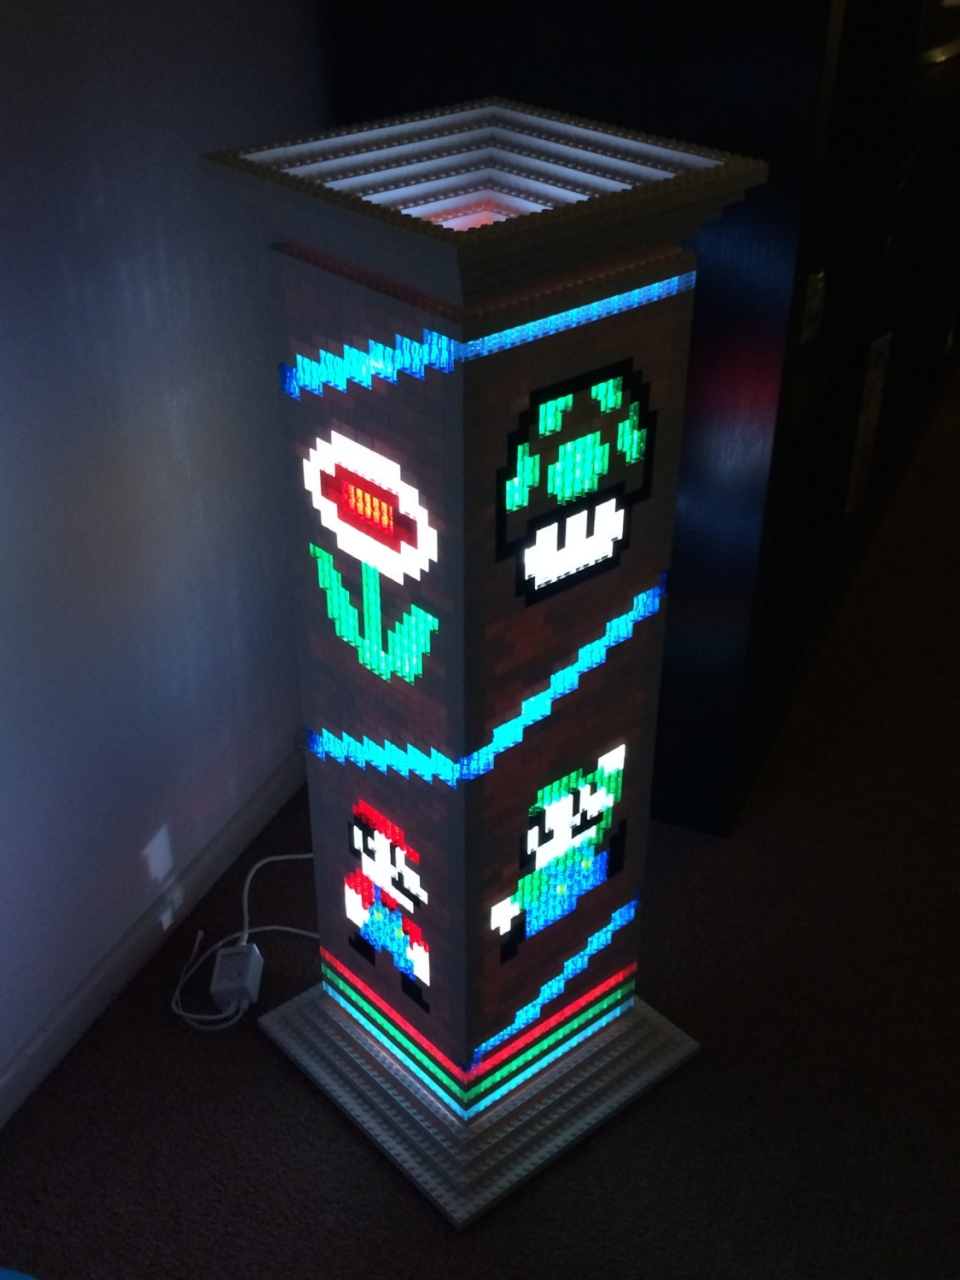 Mario Brothers LEGO Lamp Is a Classy Gamer Night Light   Technabob Mario Brothers LEGO Lamp Is a Classy Gamer Night Light